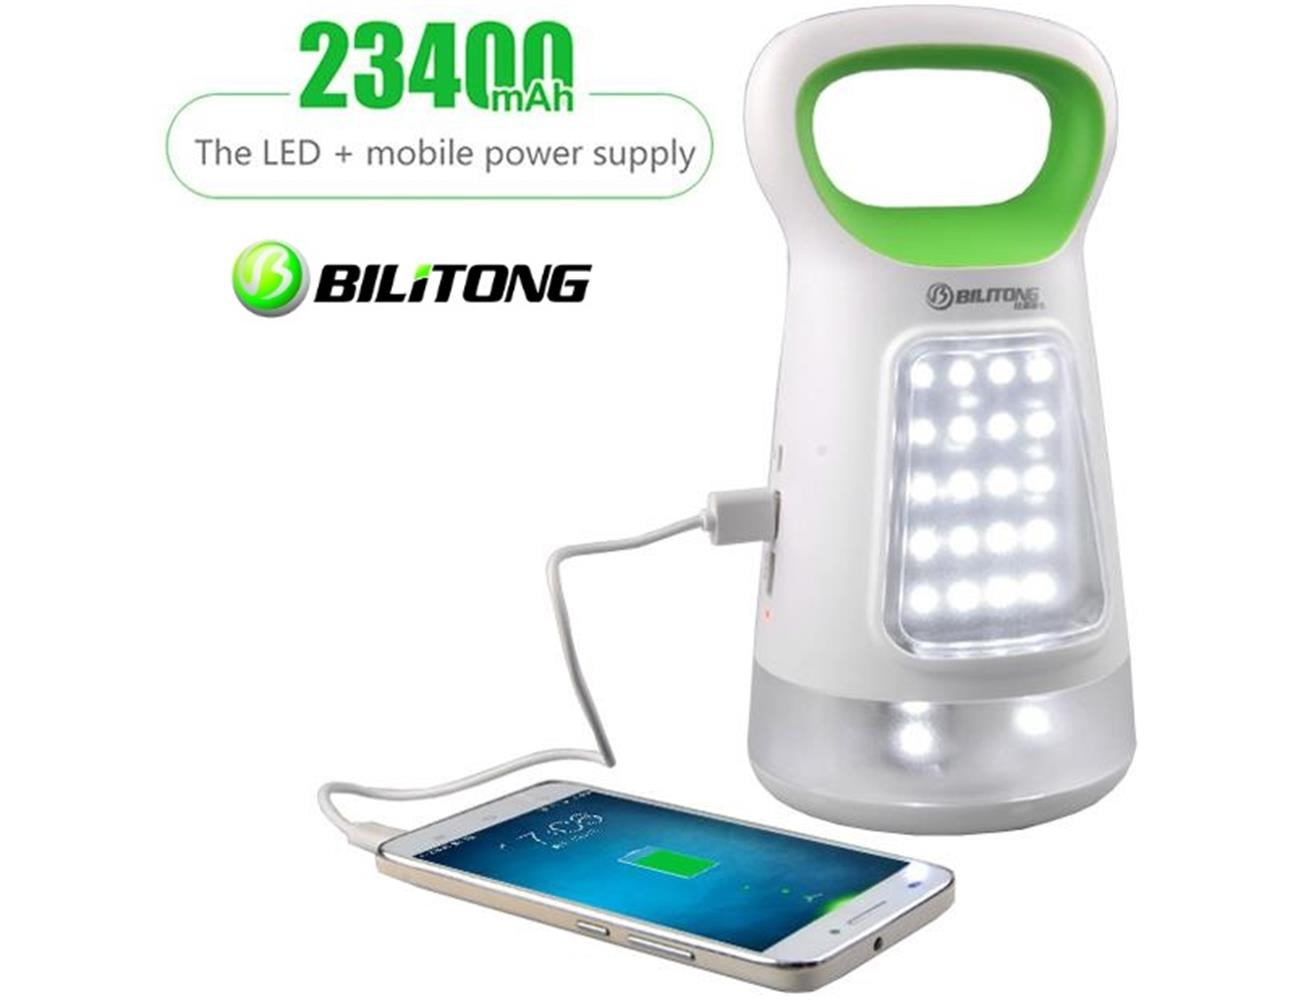 Bilitong Dual USB Power Bank 23400 mAh for iPhone & iPads with Portable LED  Light ...